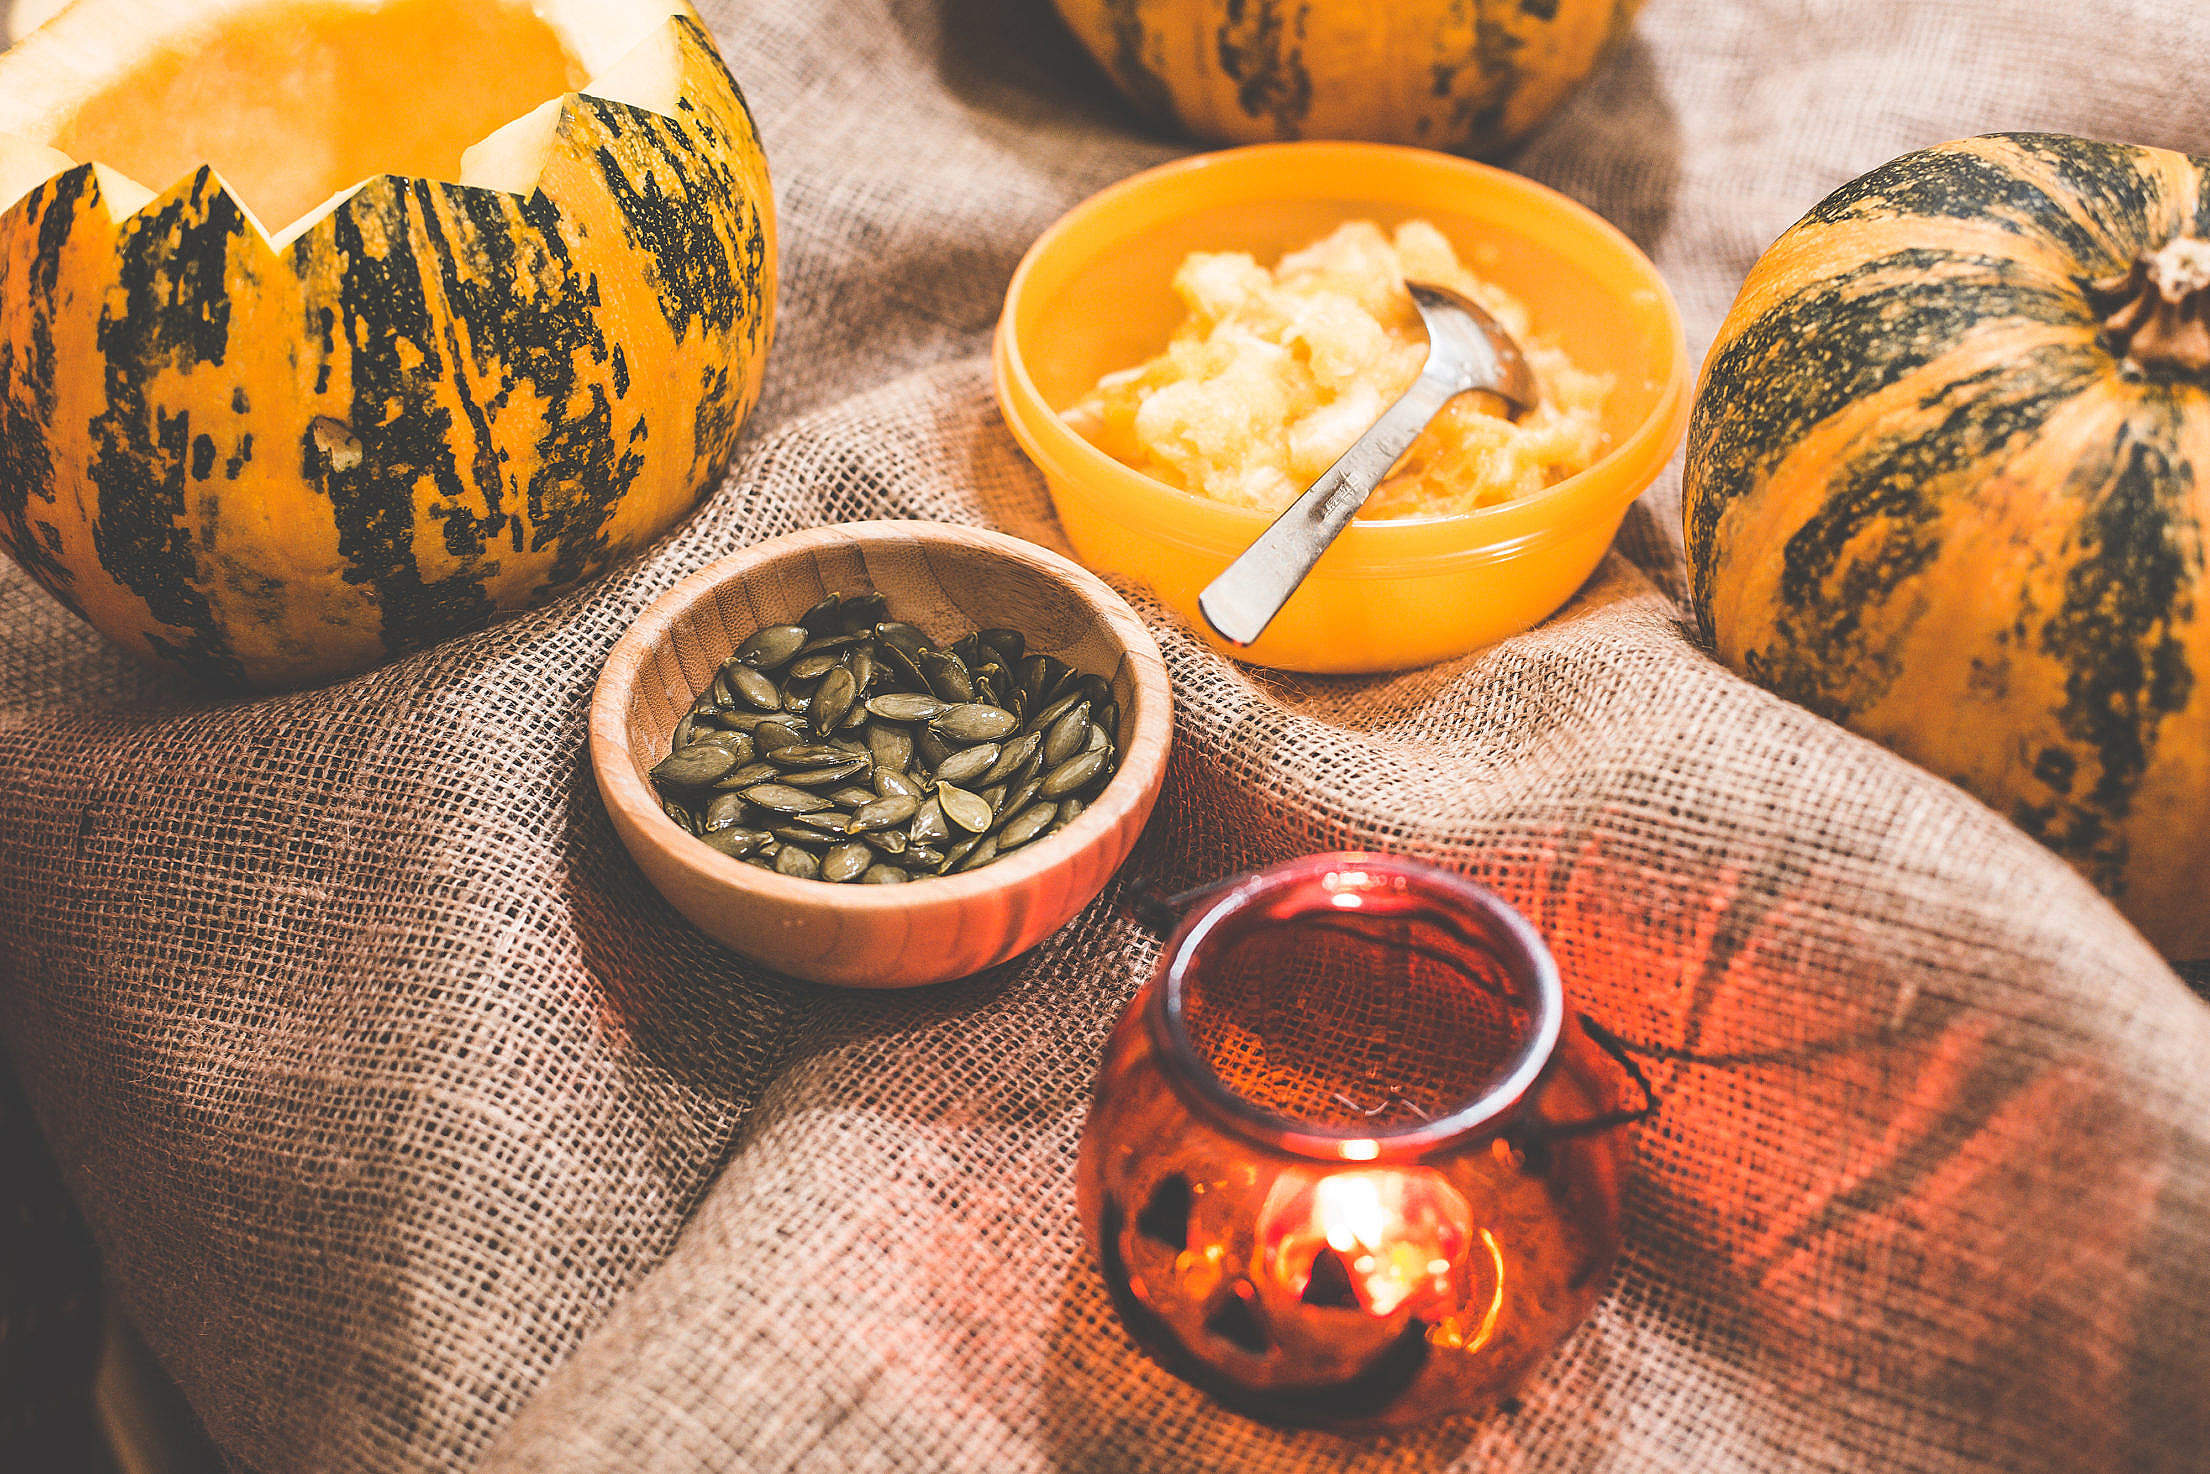 Preparing and Carving Halloween Pumpkins Free Stock Photo